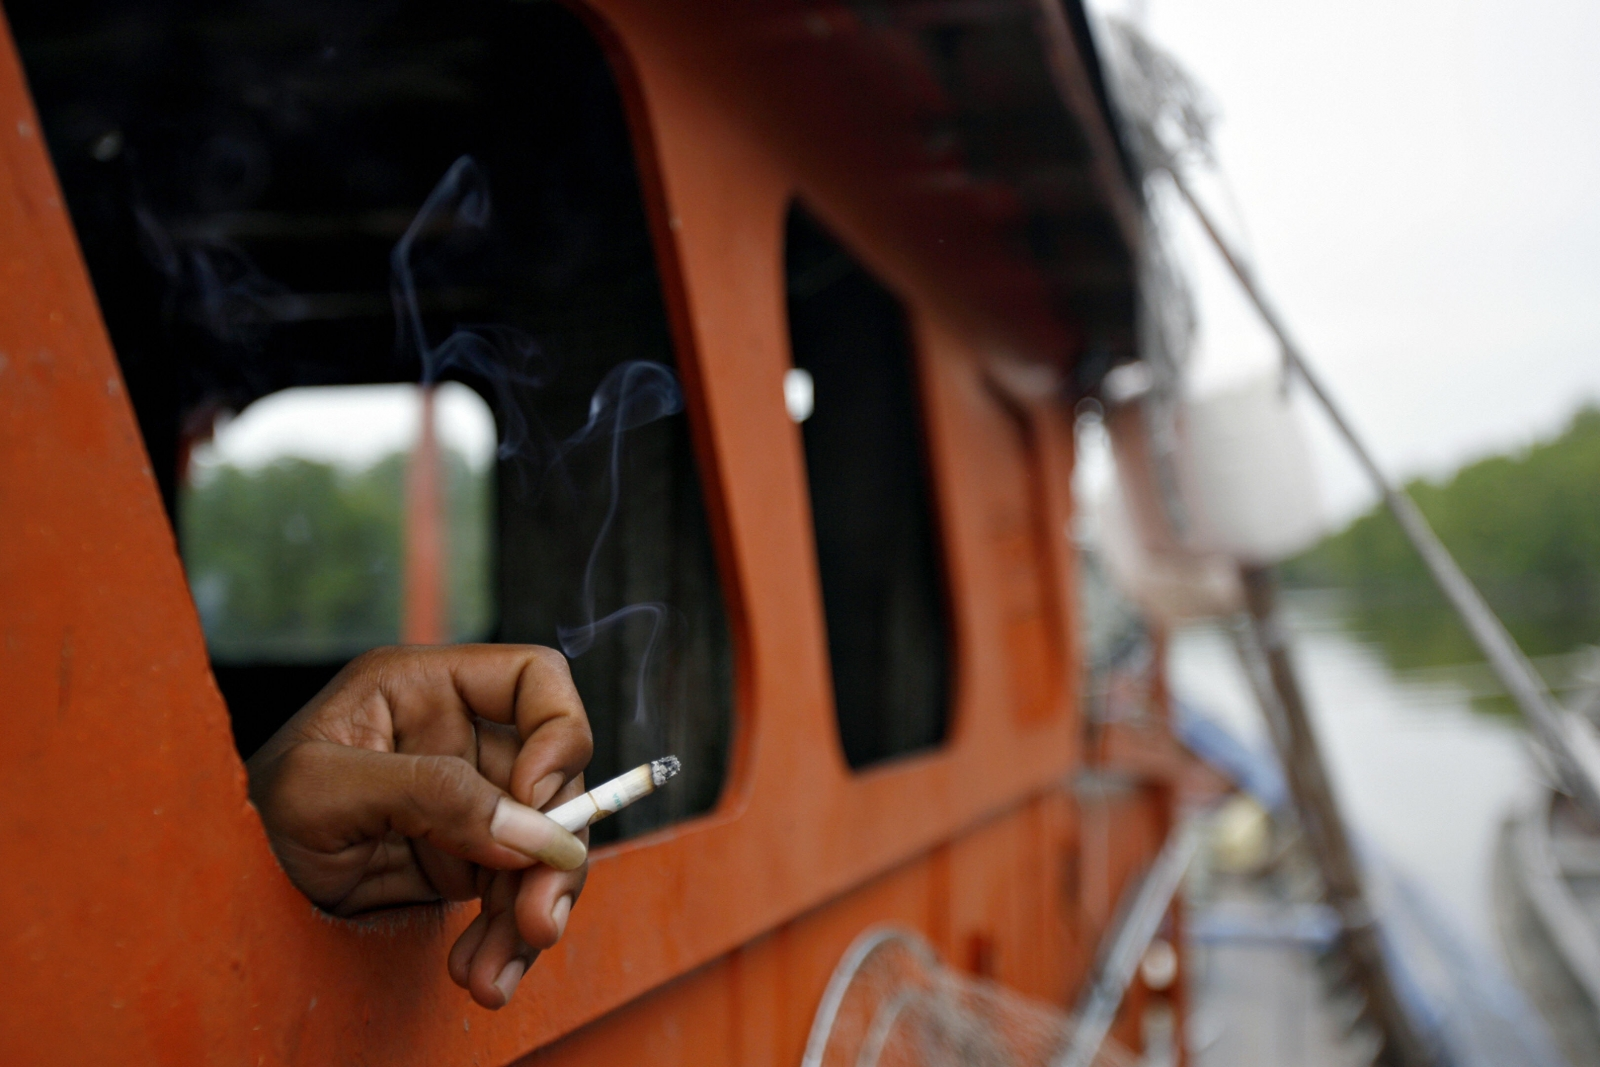 Bangladesh observes World No-Tobacco Day highlighting devastating impact on families